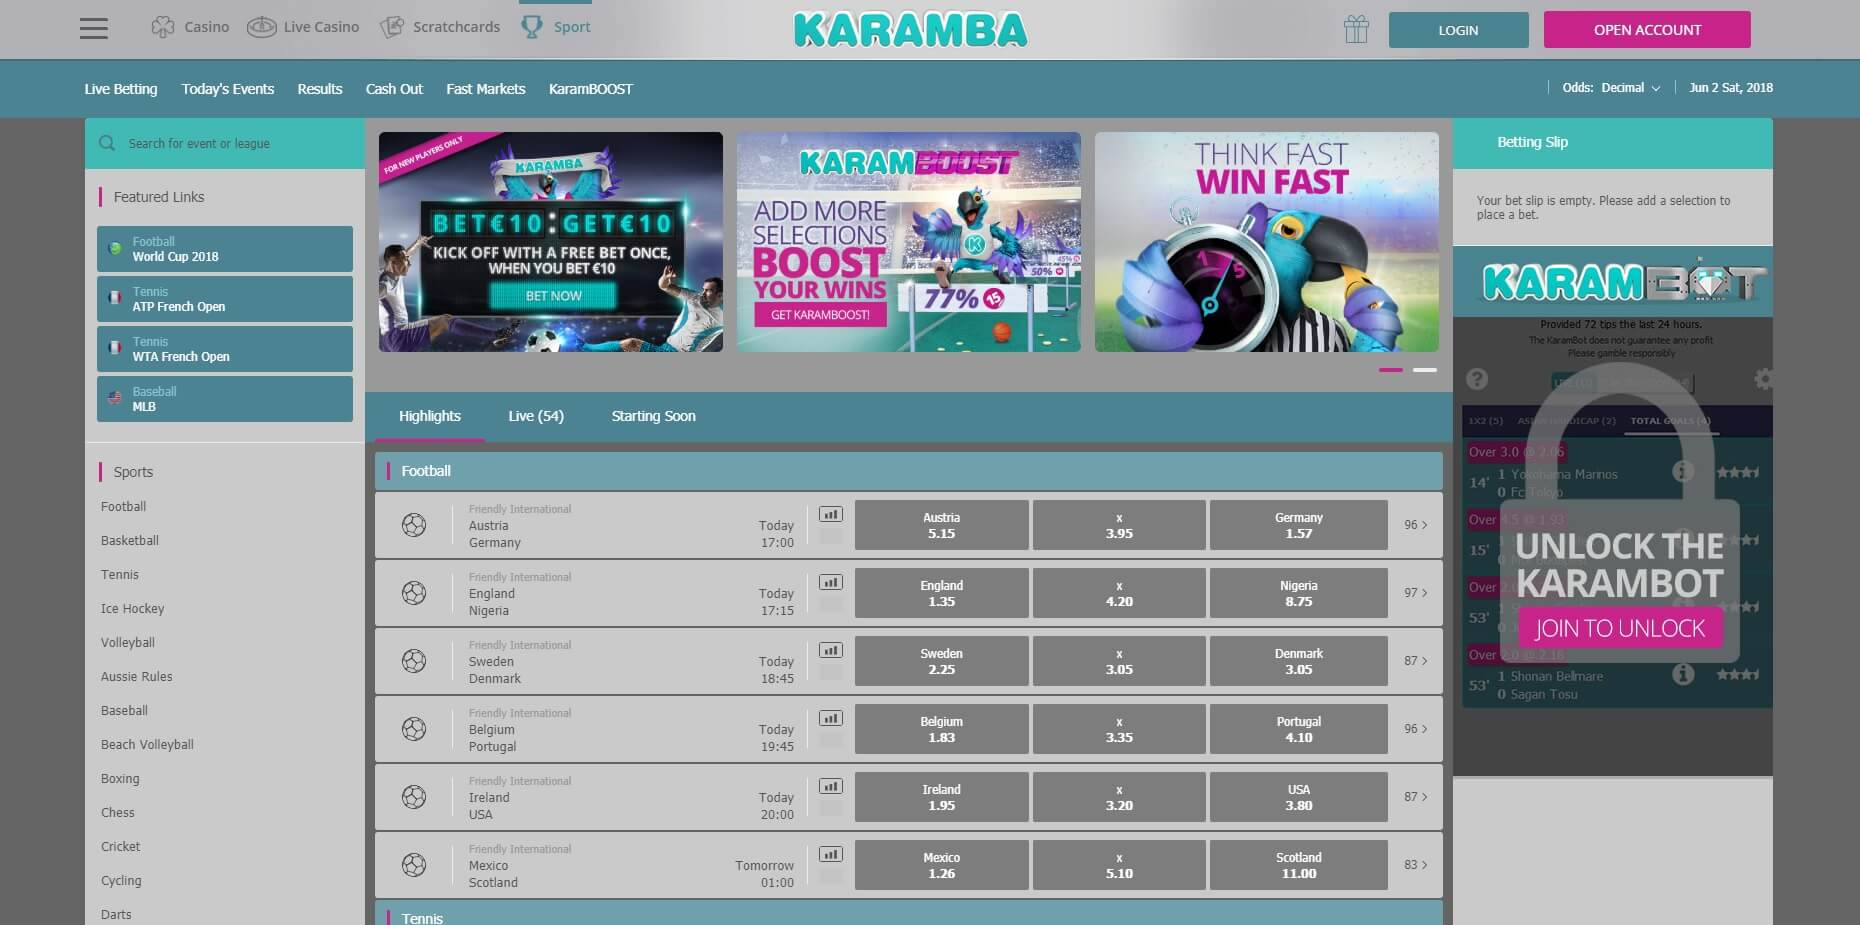 karamba sports market options